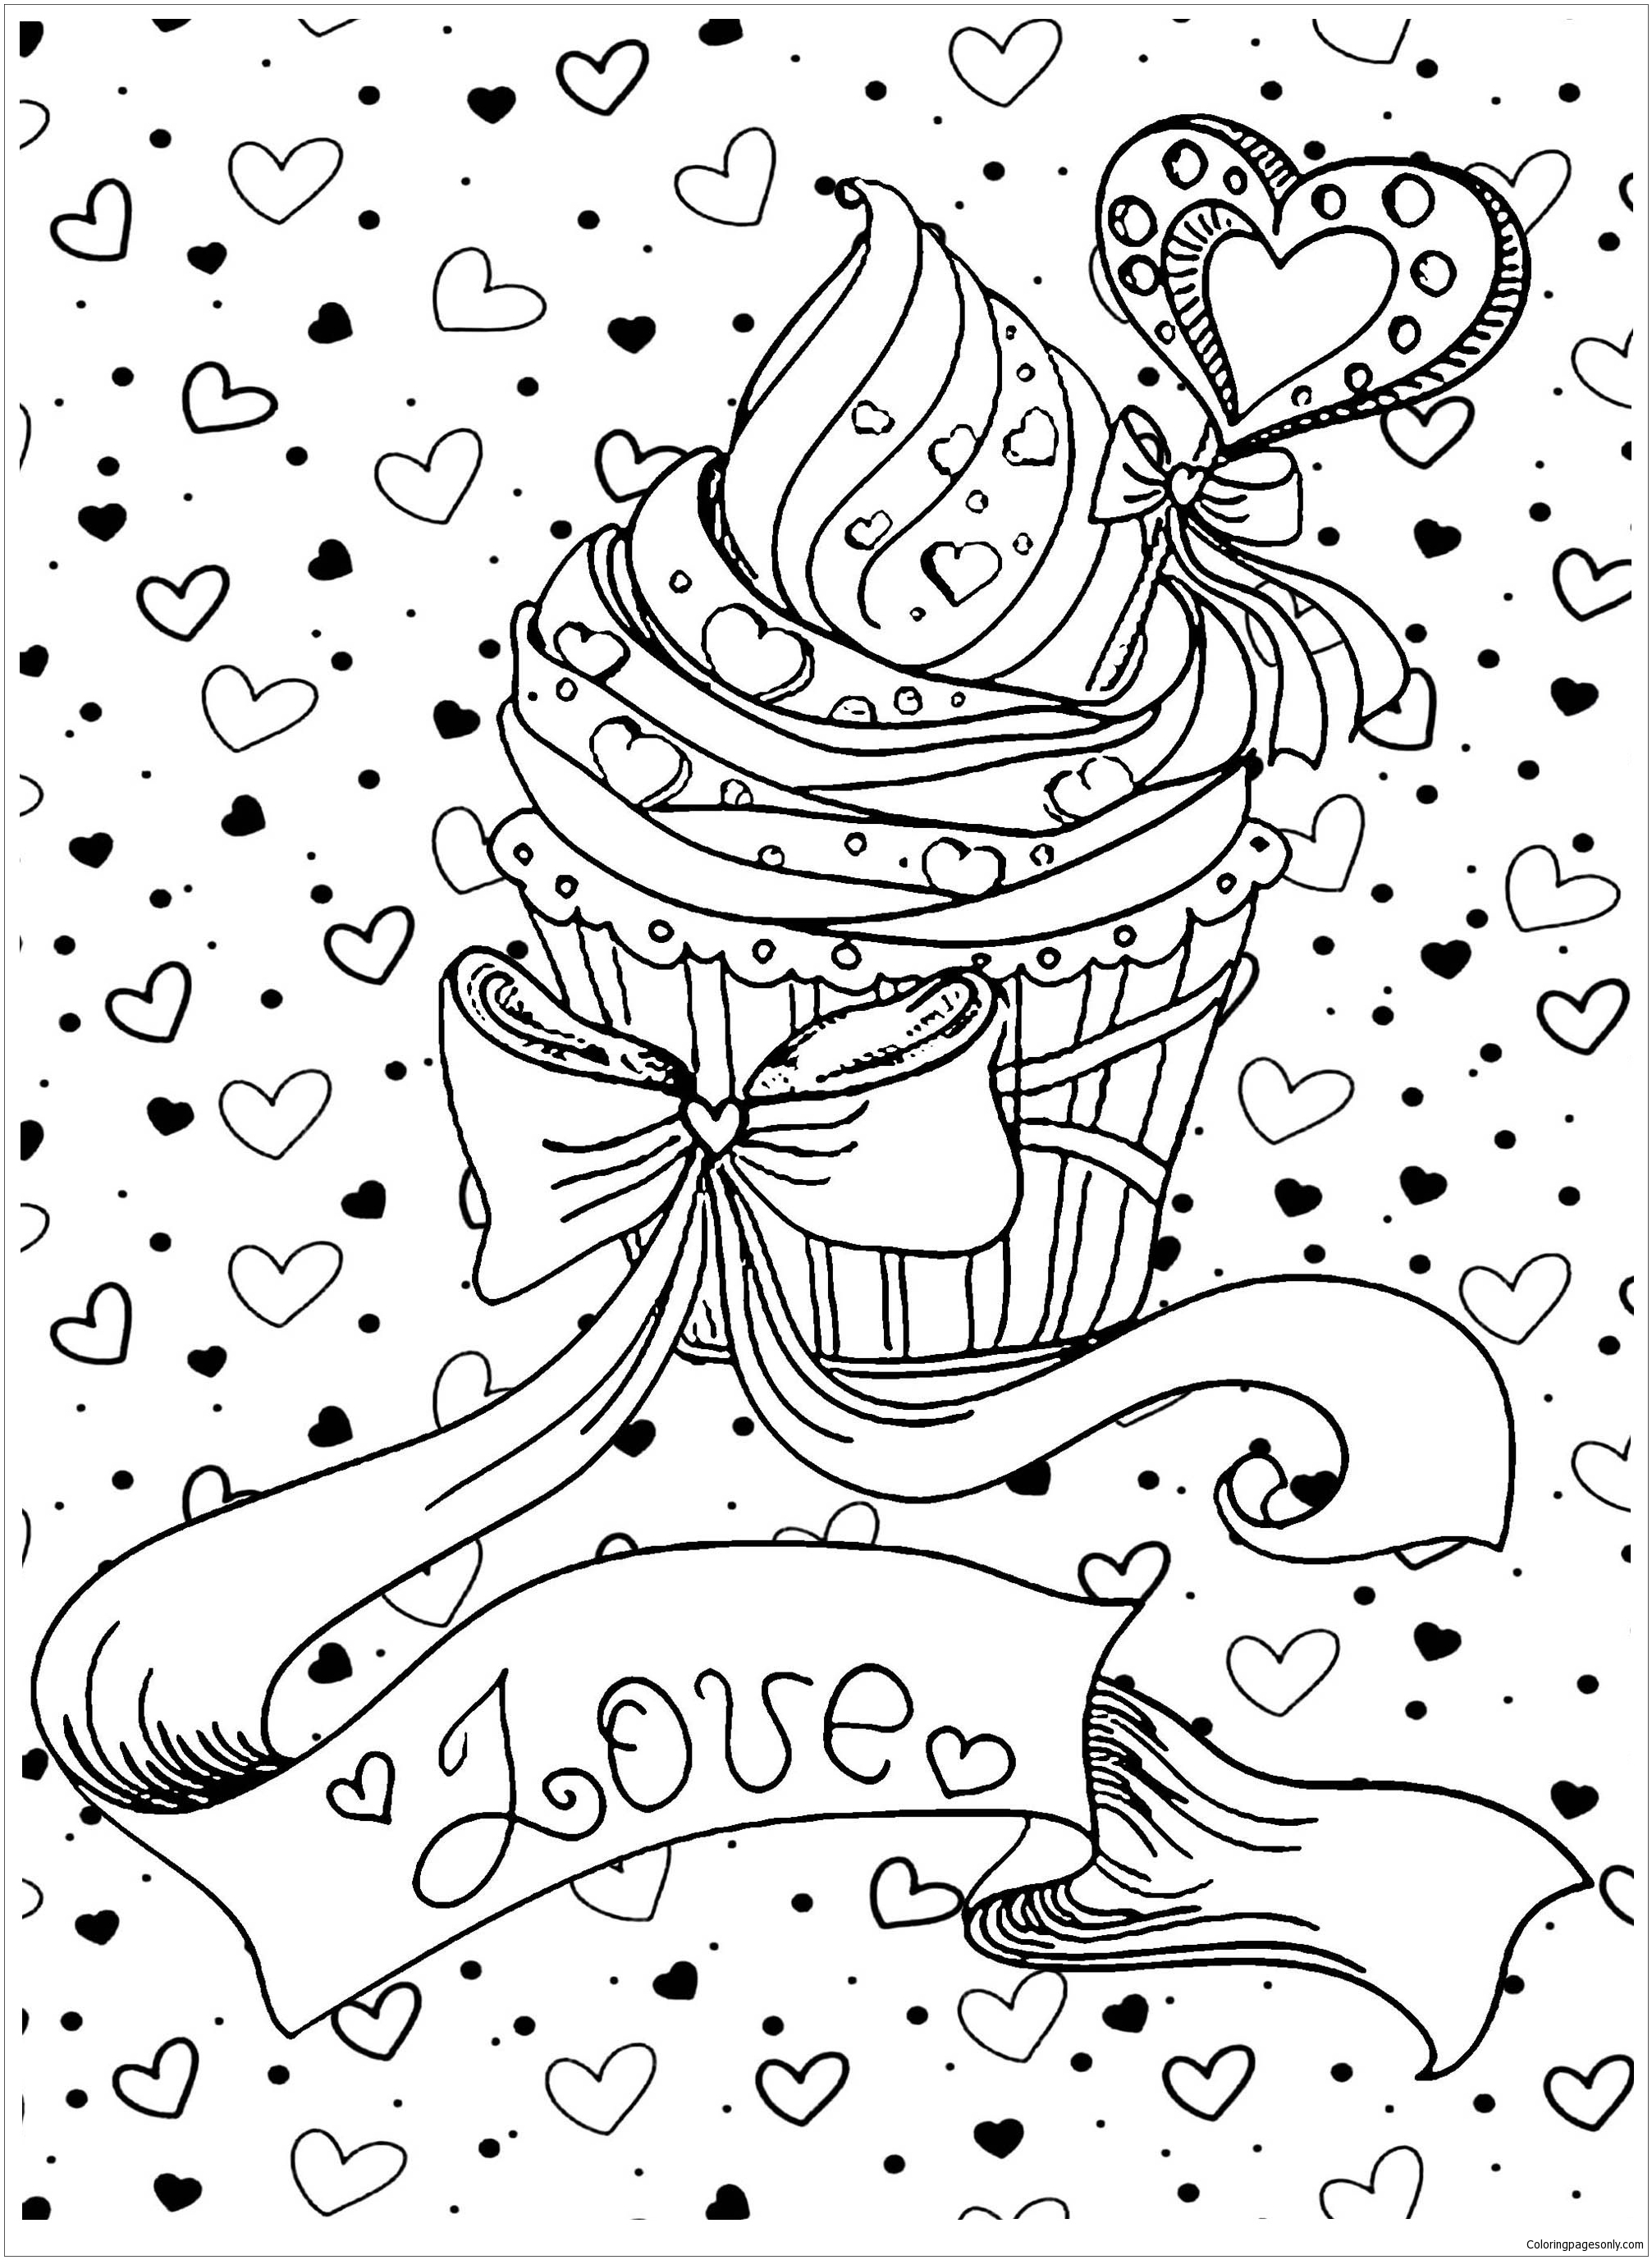 Love Cupcake Coloring Page